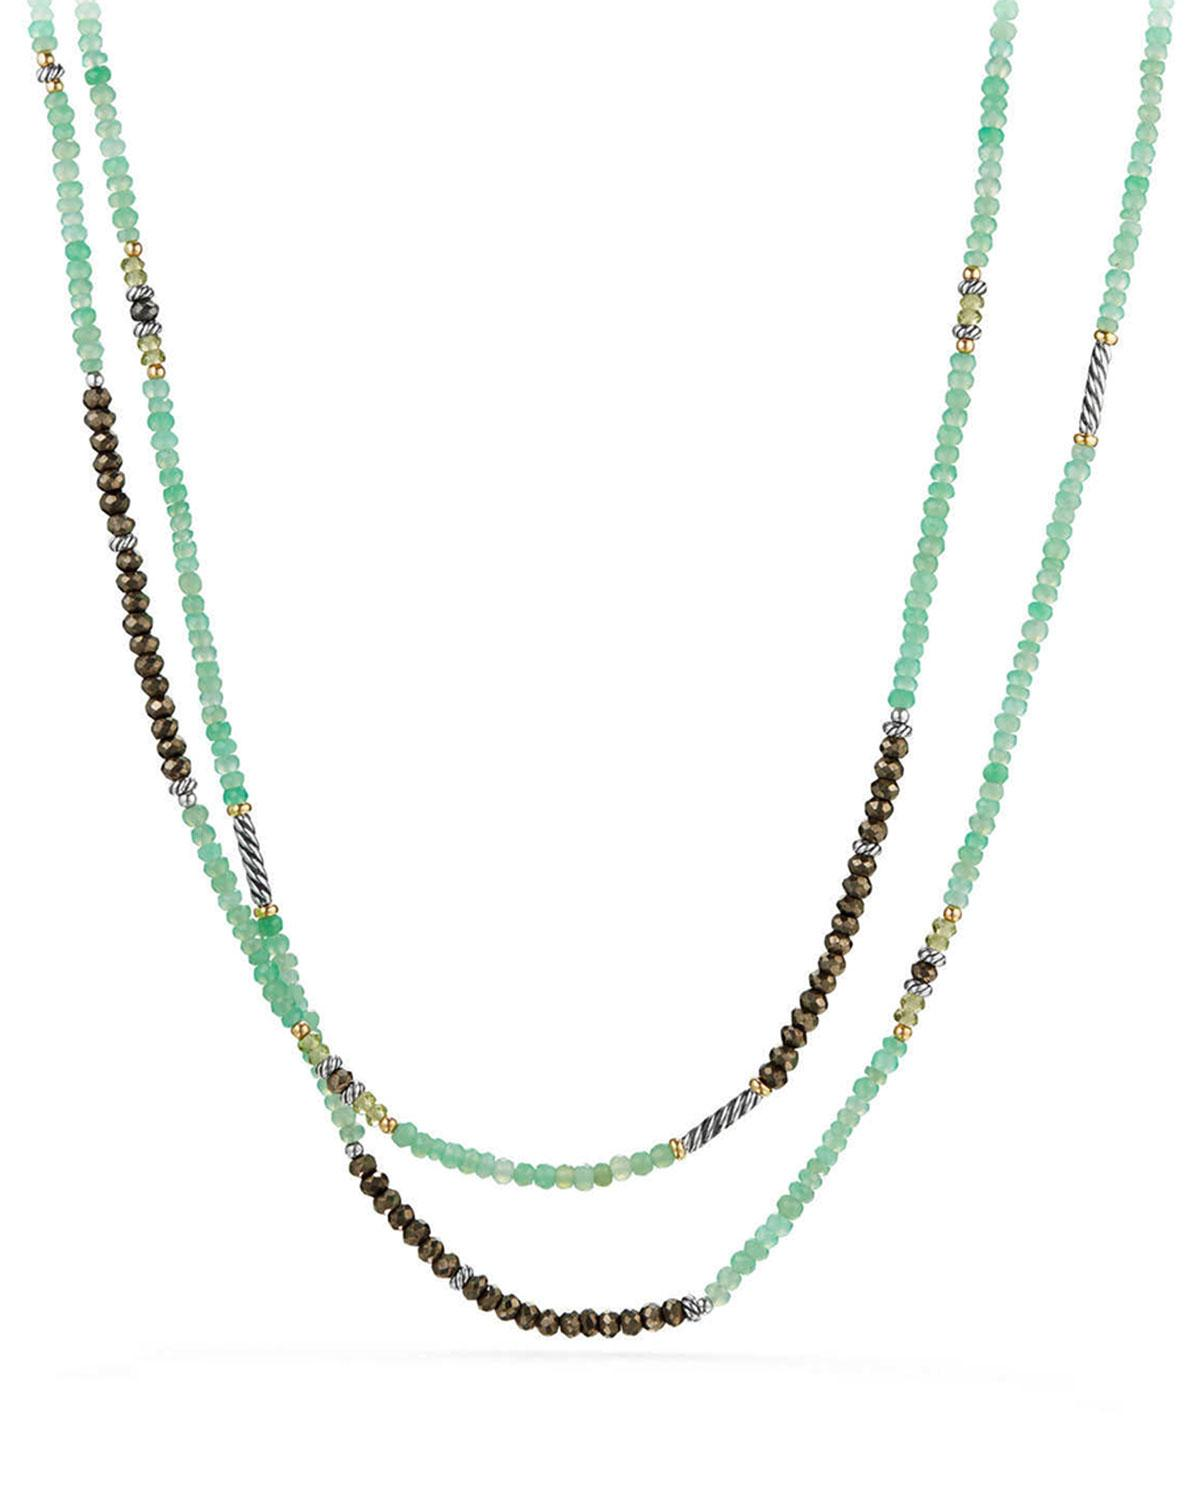 David Yurman Tweejoux Bead Necklace In Chrysoprase, Pyrite & Peridot With 18K Gold In Green/Gray